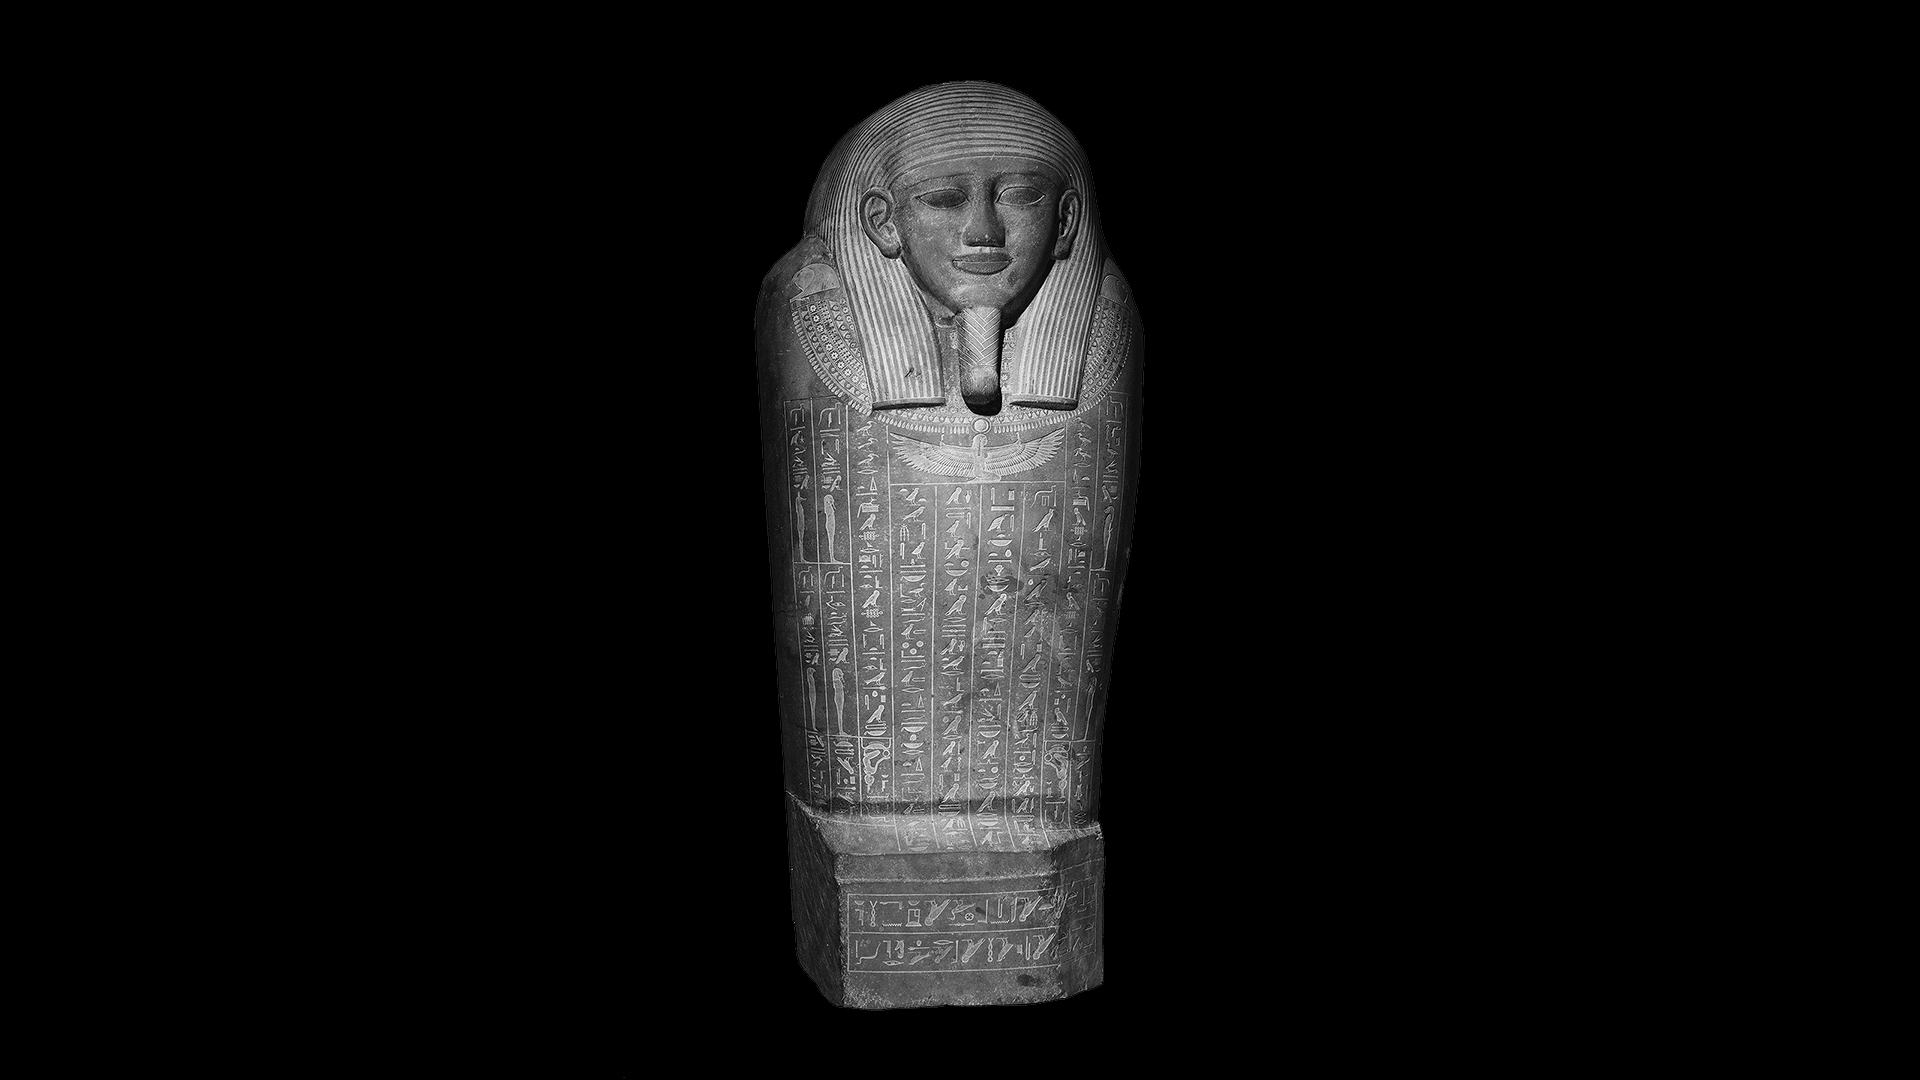 The lid of Psamtik's sarcophagus is carved from a single slab of stone covered with engravings of protective spells.